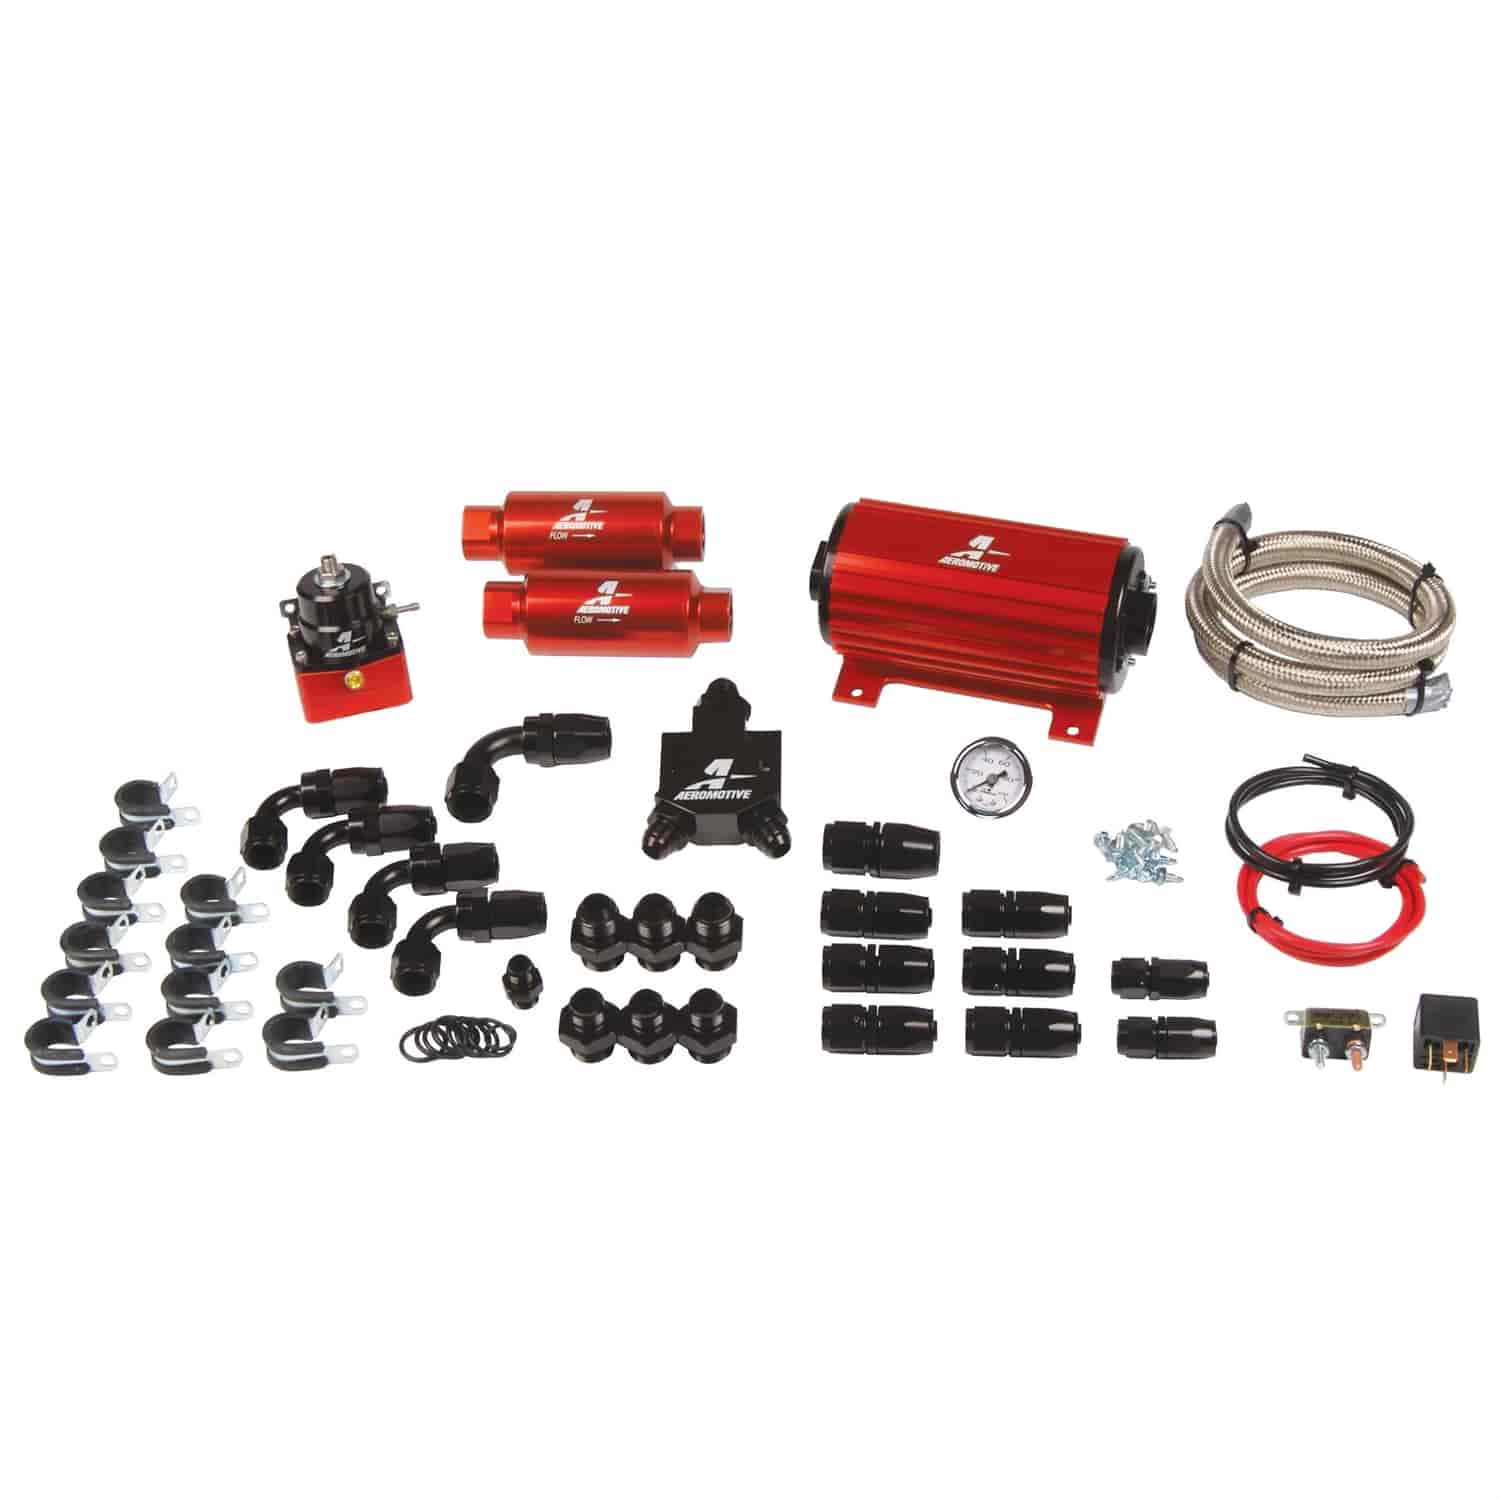 Aeromotive 17125 - Aeromotive Universal Bolt-On Fuel Systems